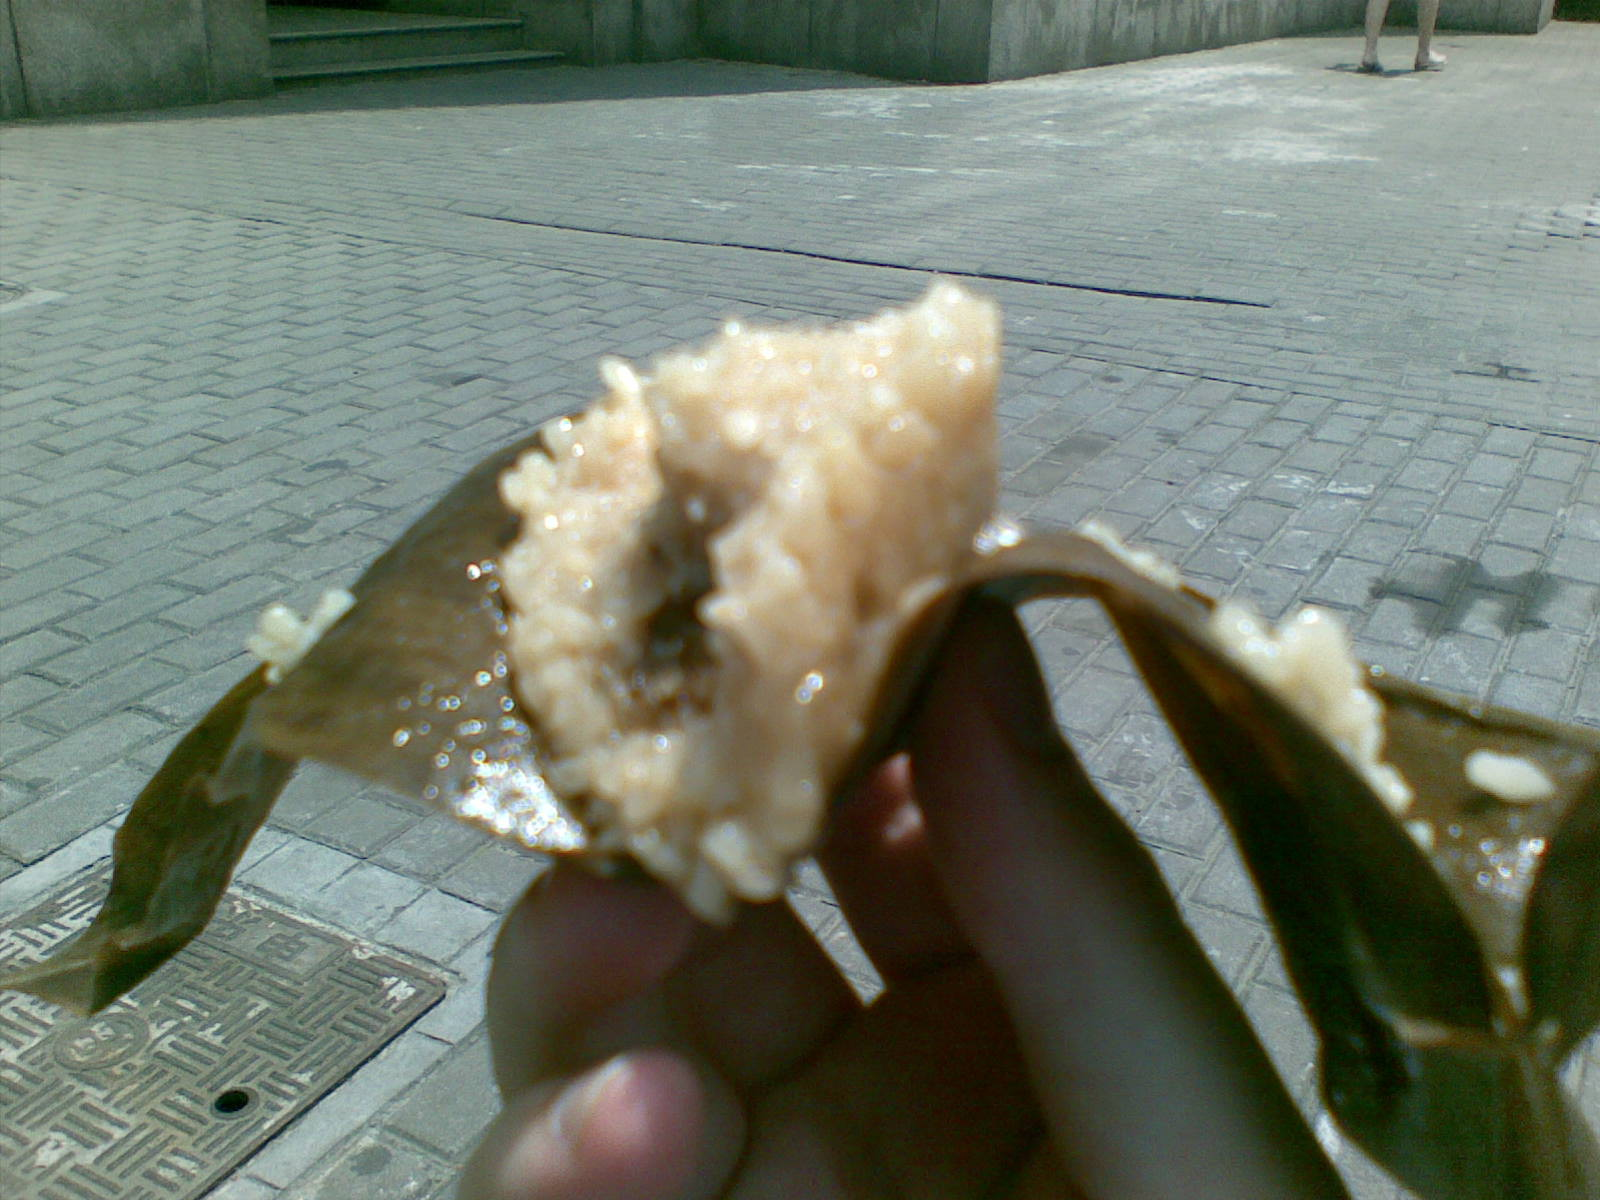 Street vendor sticky rice cube